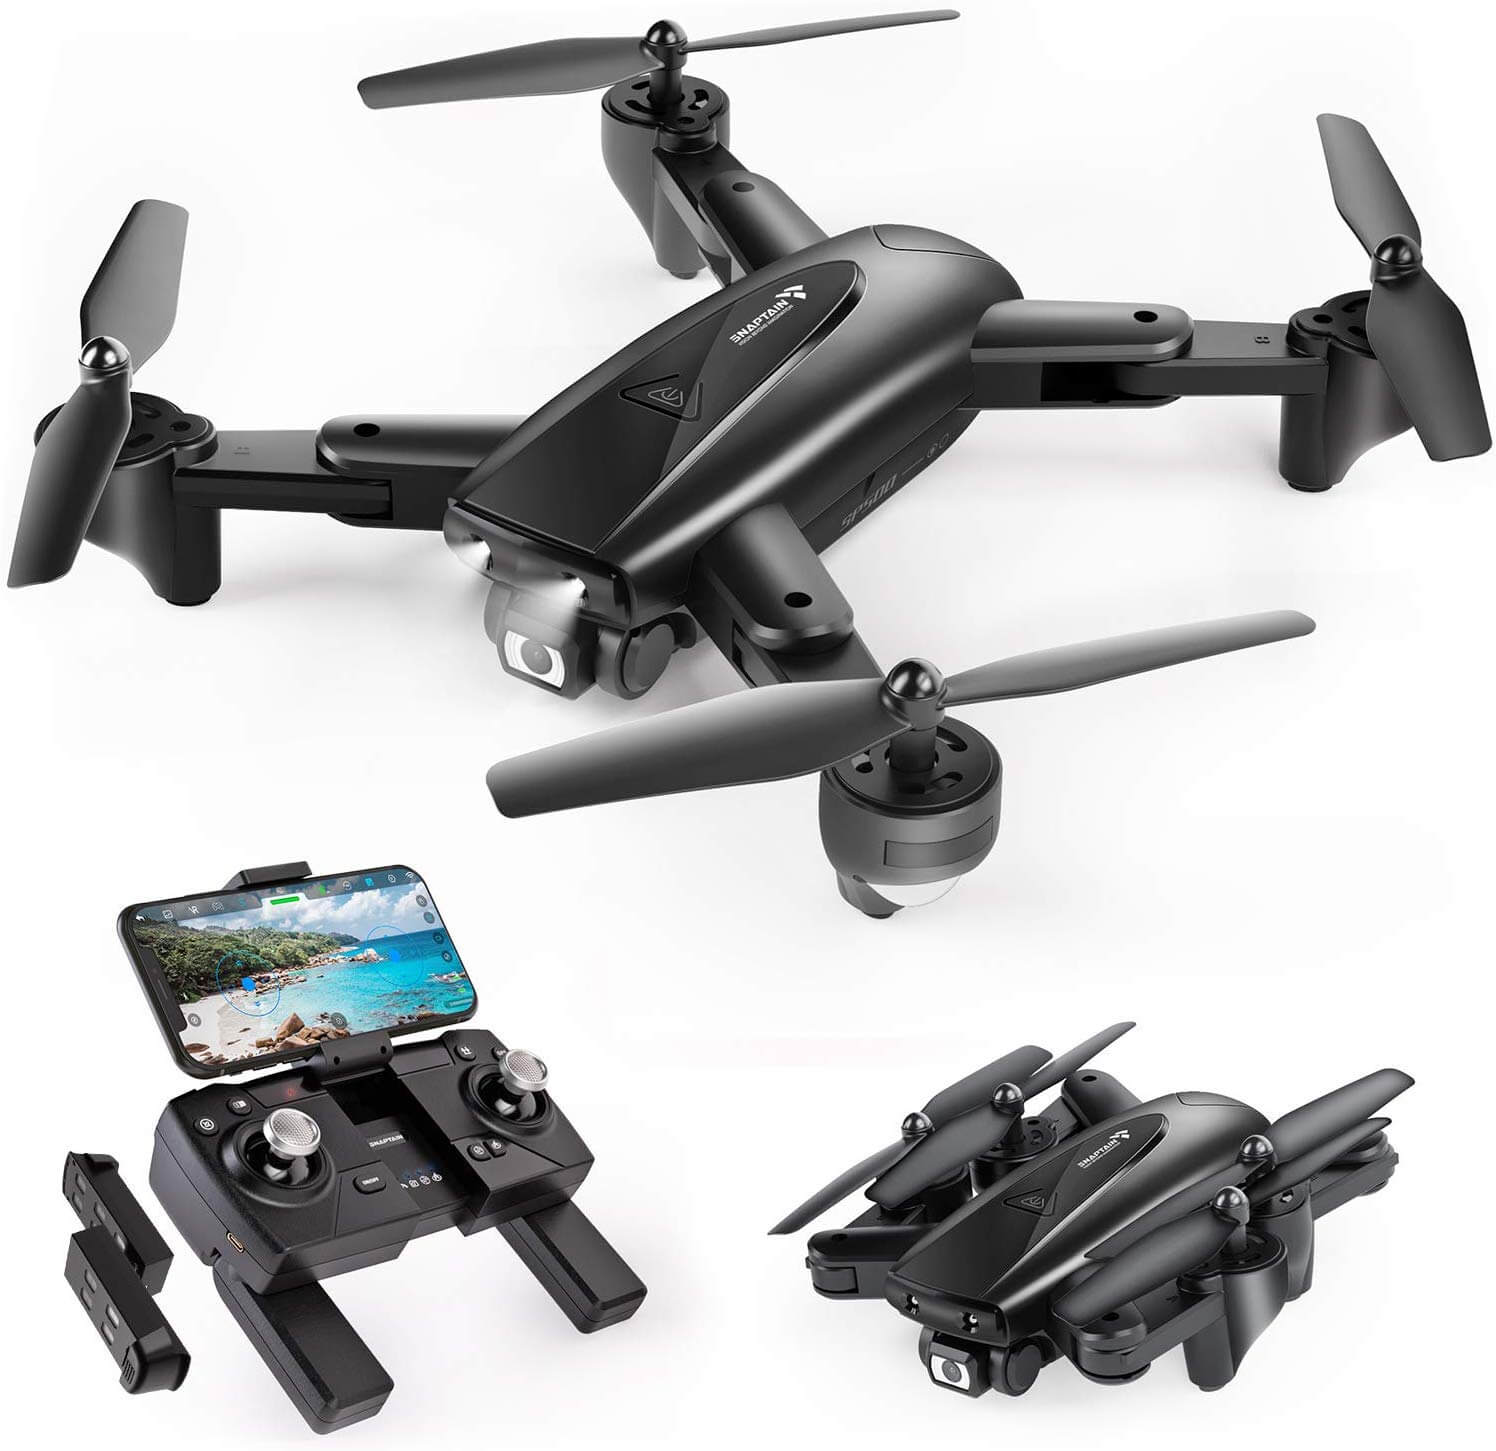 RC Drone Toy 1080P HD Camera Quadcopter Helicopter RC Toy for Kids Adults